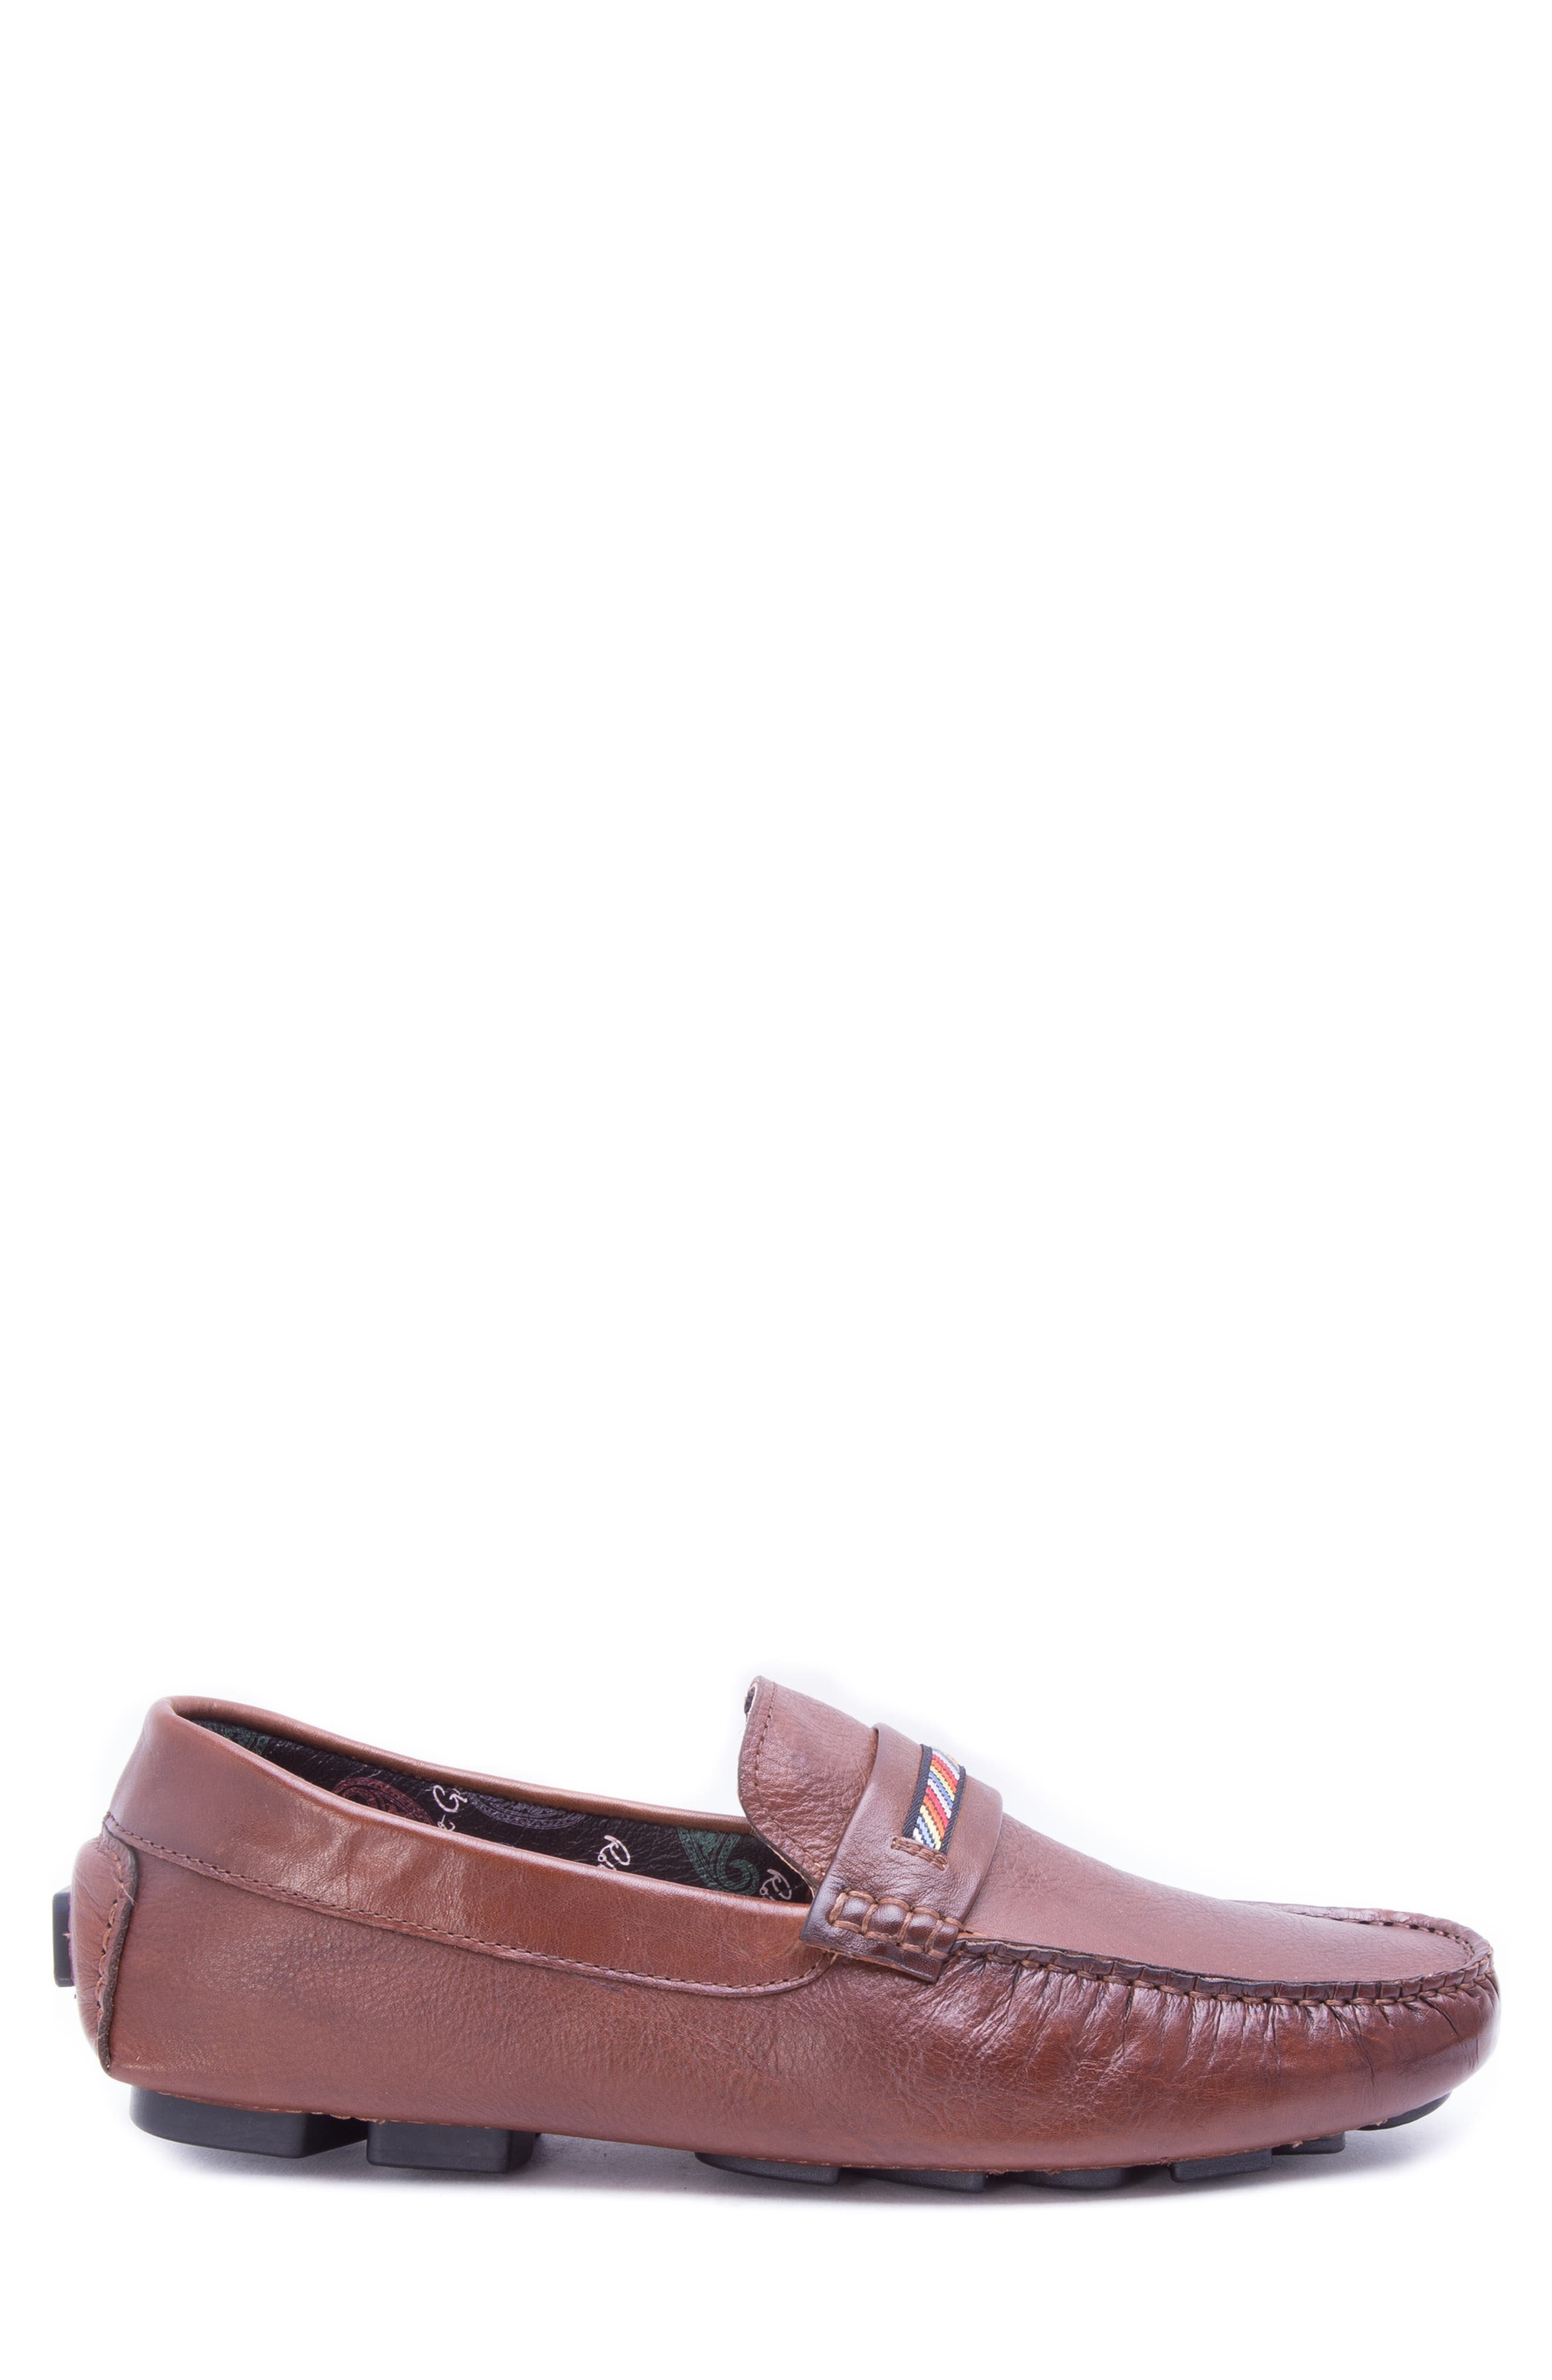 Hart Driving Moccasin,                             Alternate thumbnail 3, color,                             COGNAC LEATHER